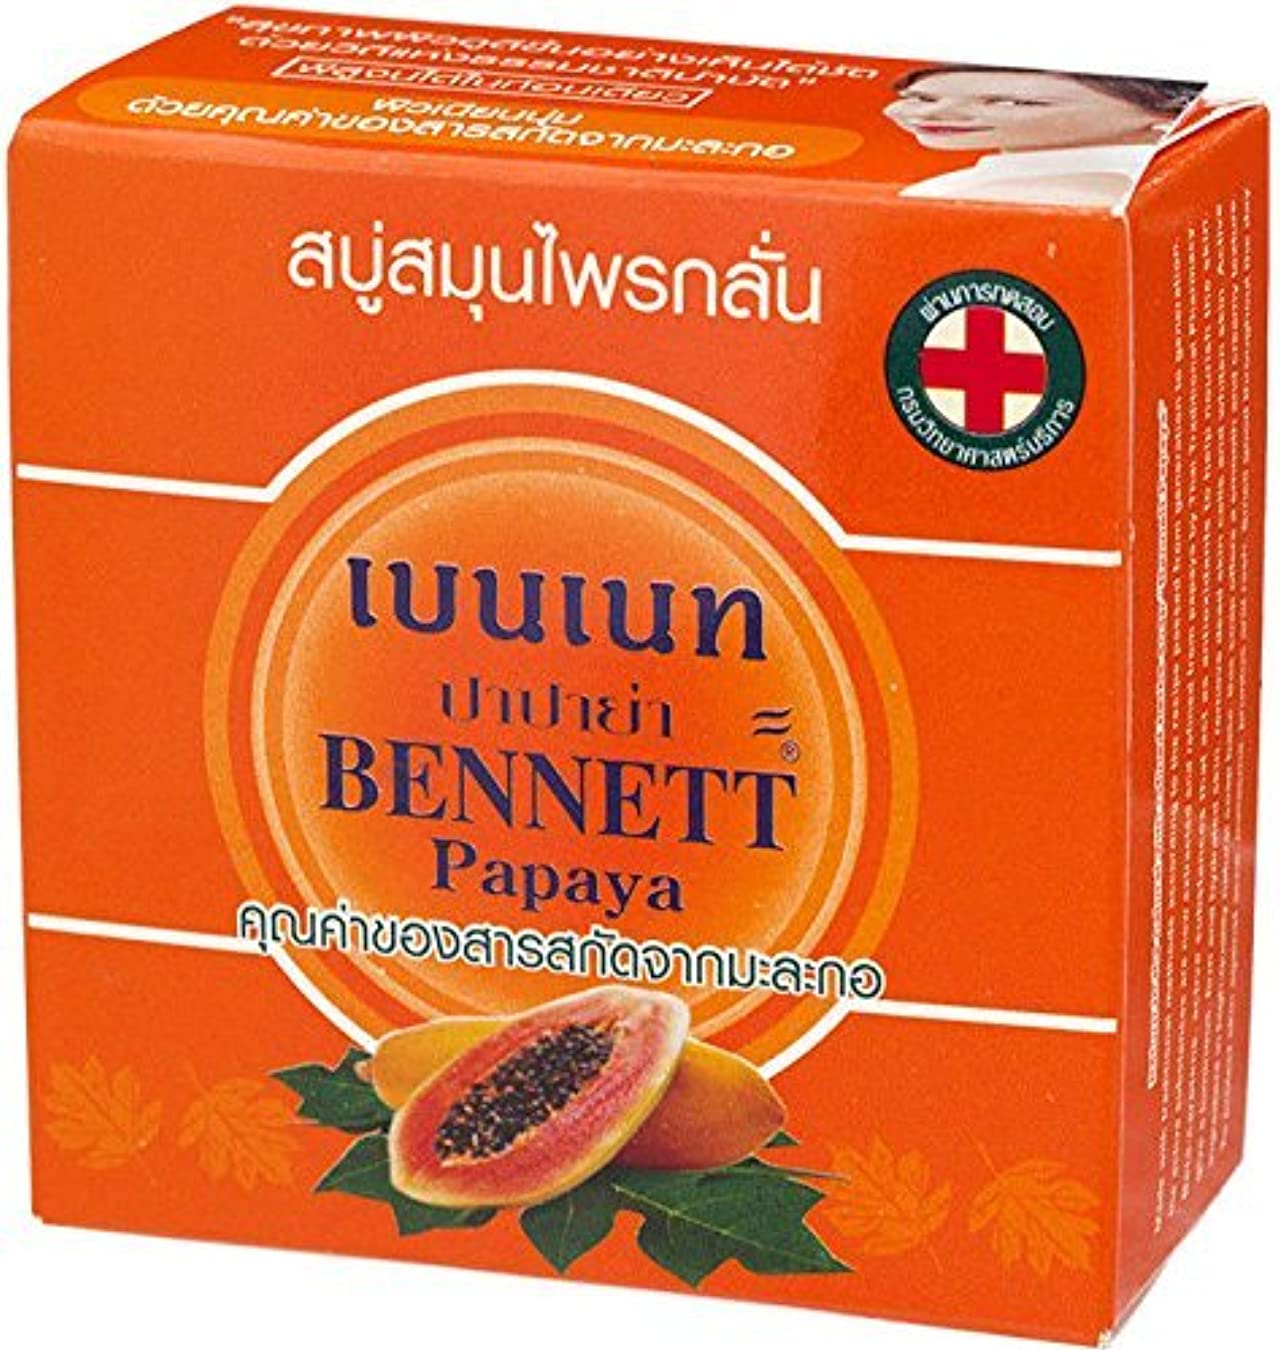 PARROT HERBAL NATURAL EXTRACT THAI PAPAYA PLUS ALOE VERA AND HONEY SOAP BAR 75G [並行輸入品]